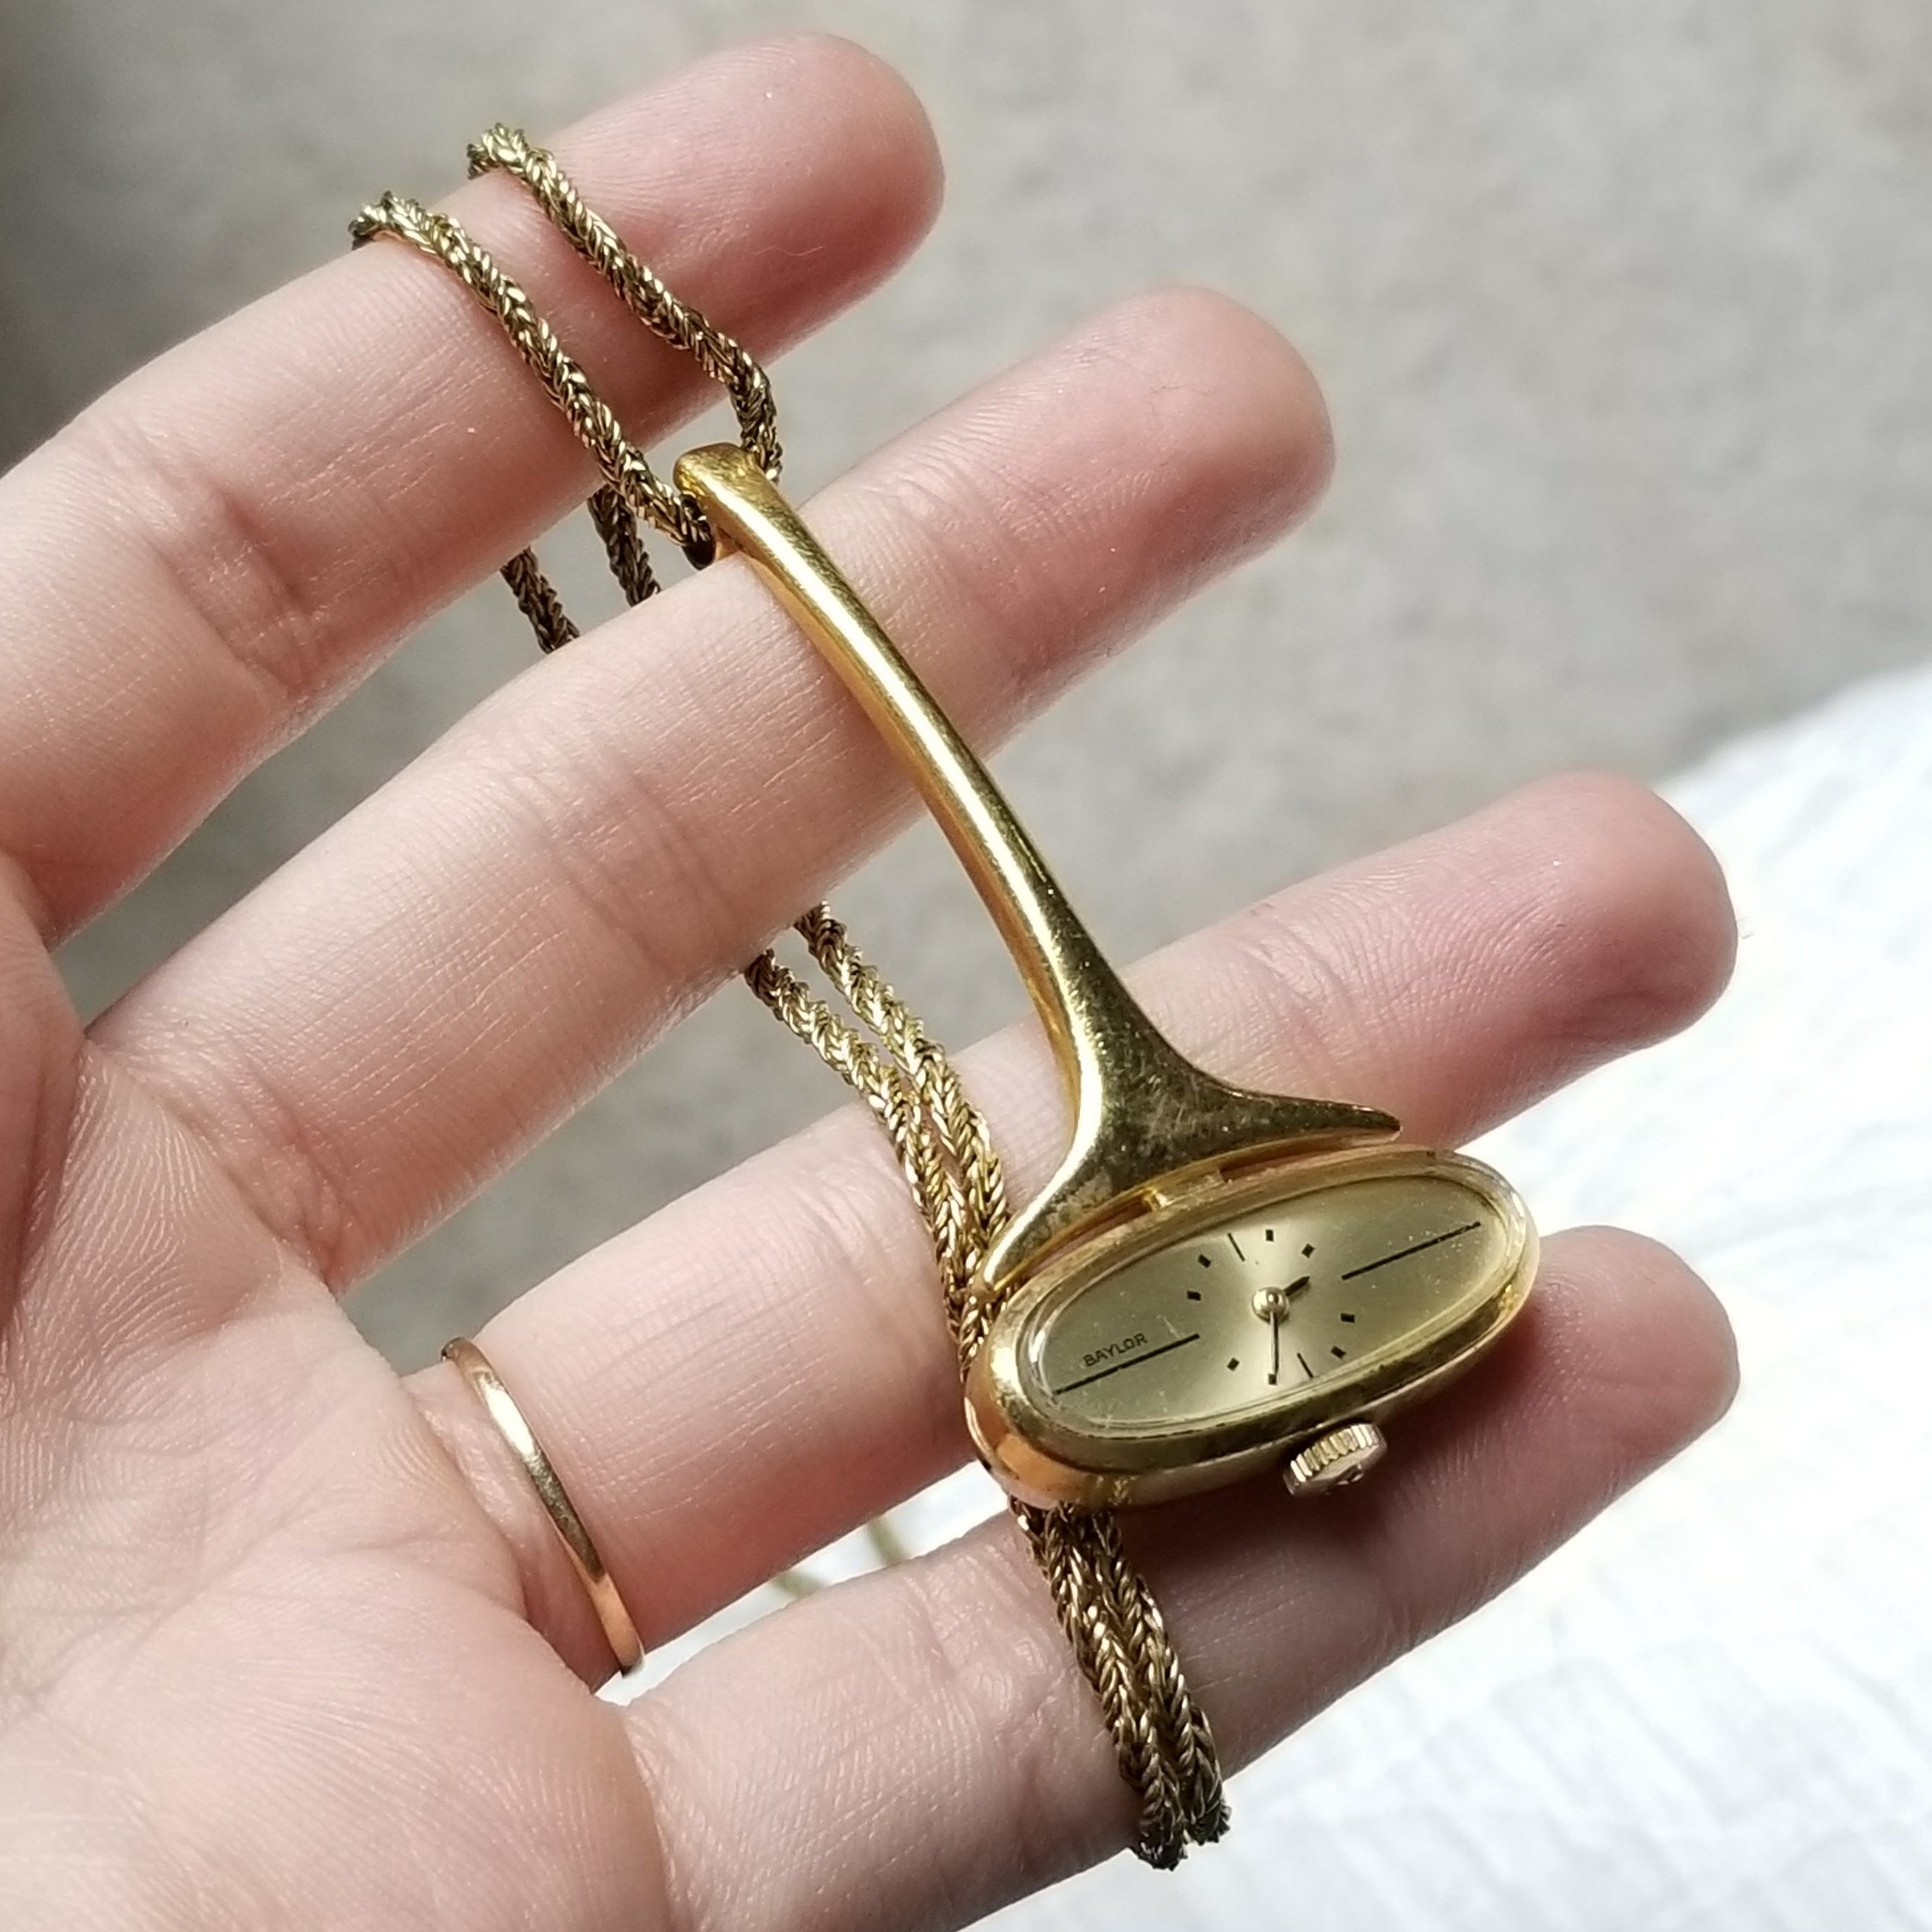 The gold necklace watch.